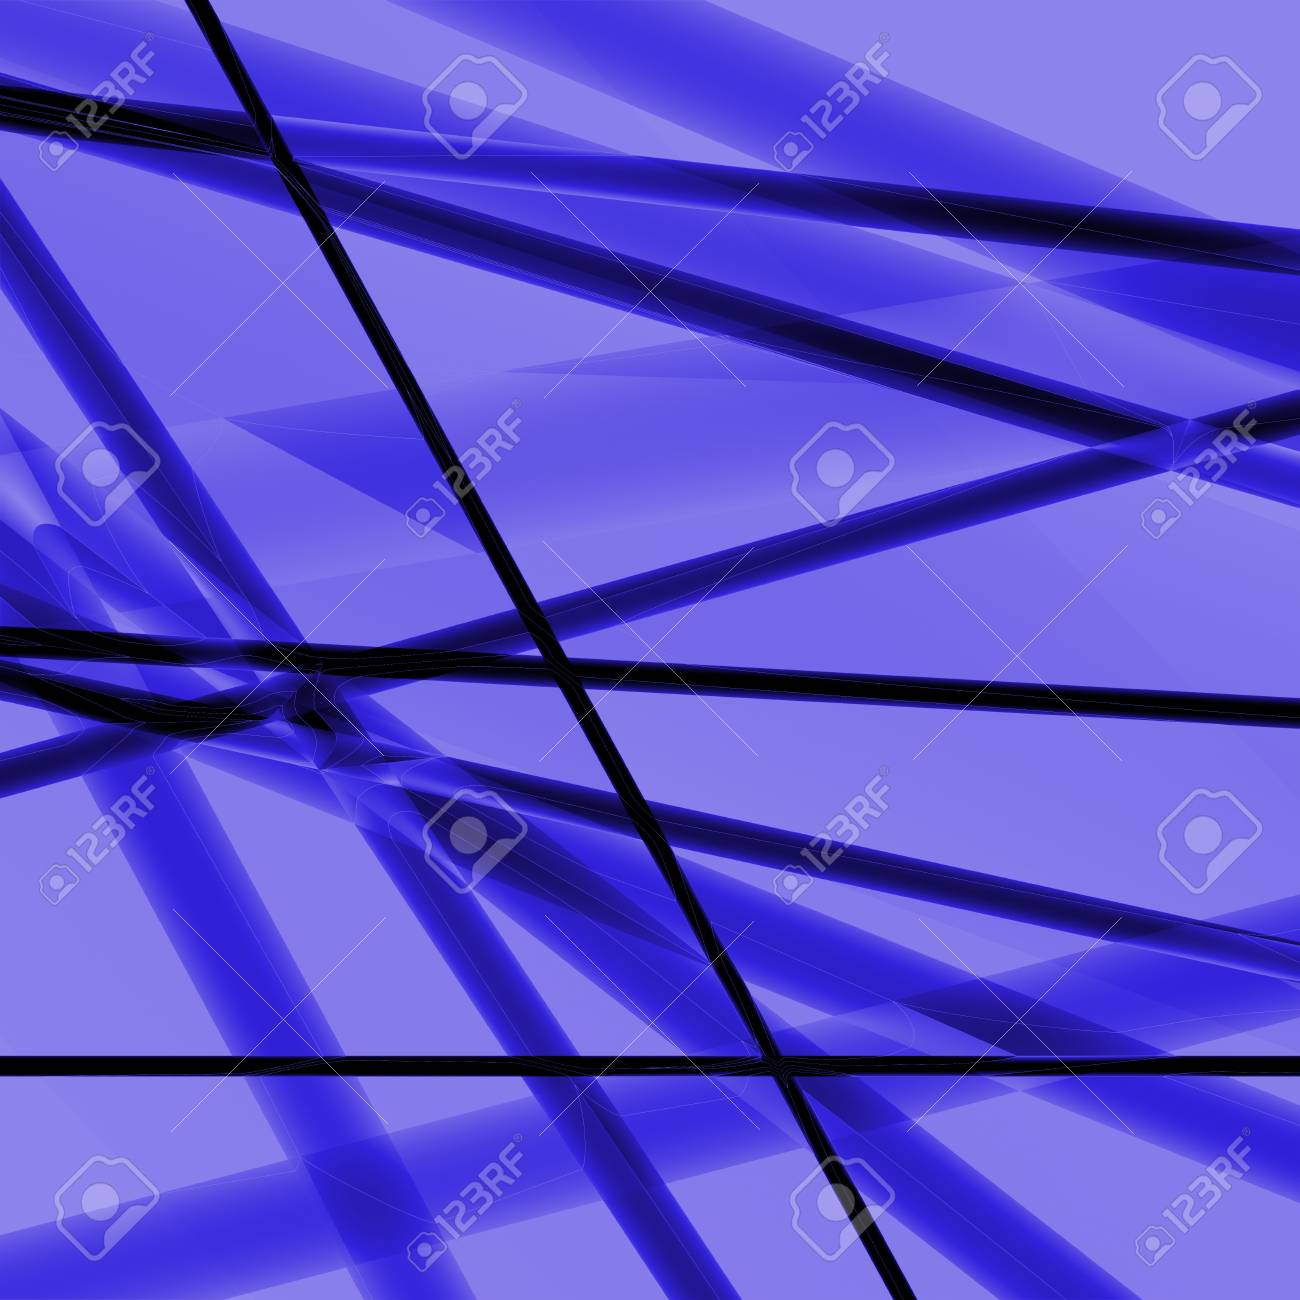 Abstract background or wallpaper Stock Photo - 3384914